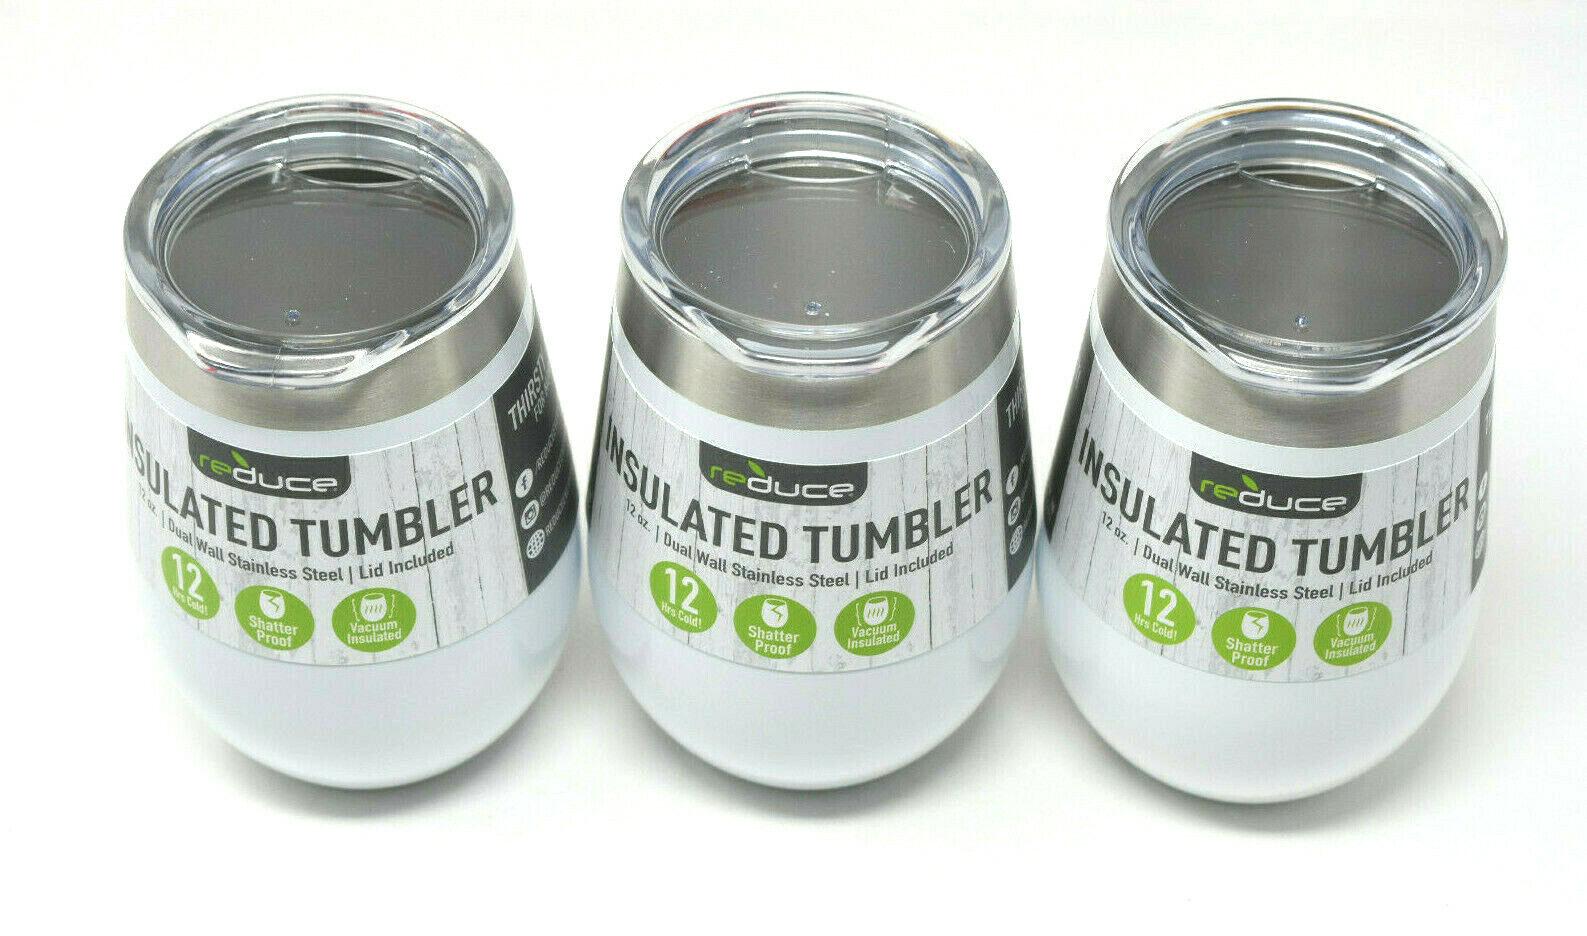 Reduce Everyday White Stainless Steel Insulated Tumbler Cup